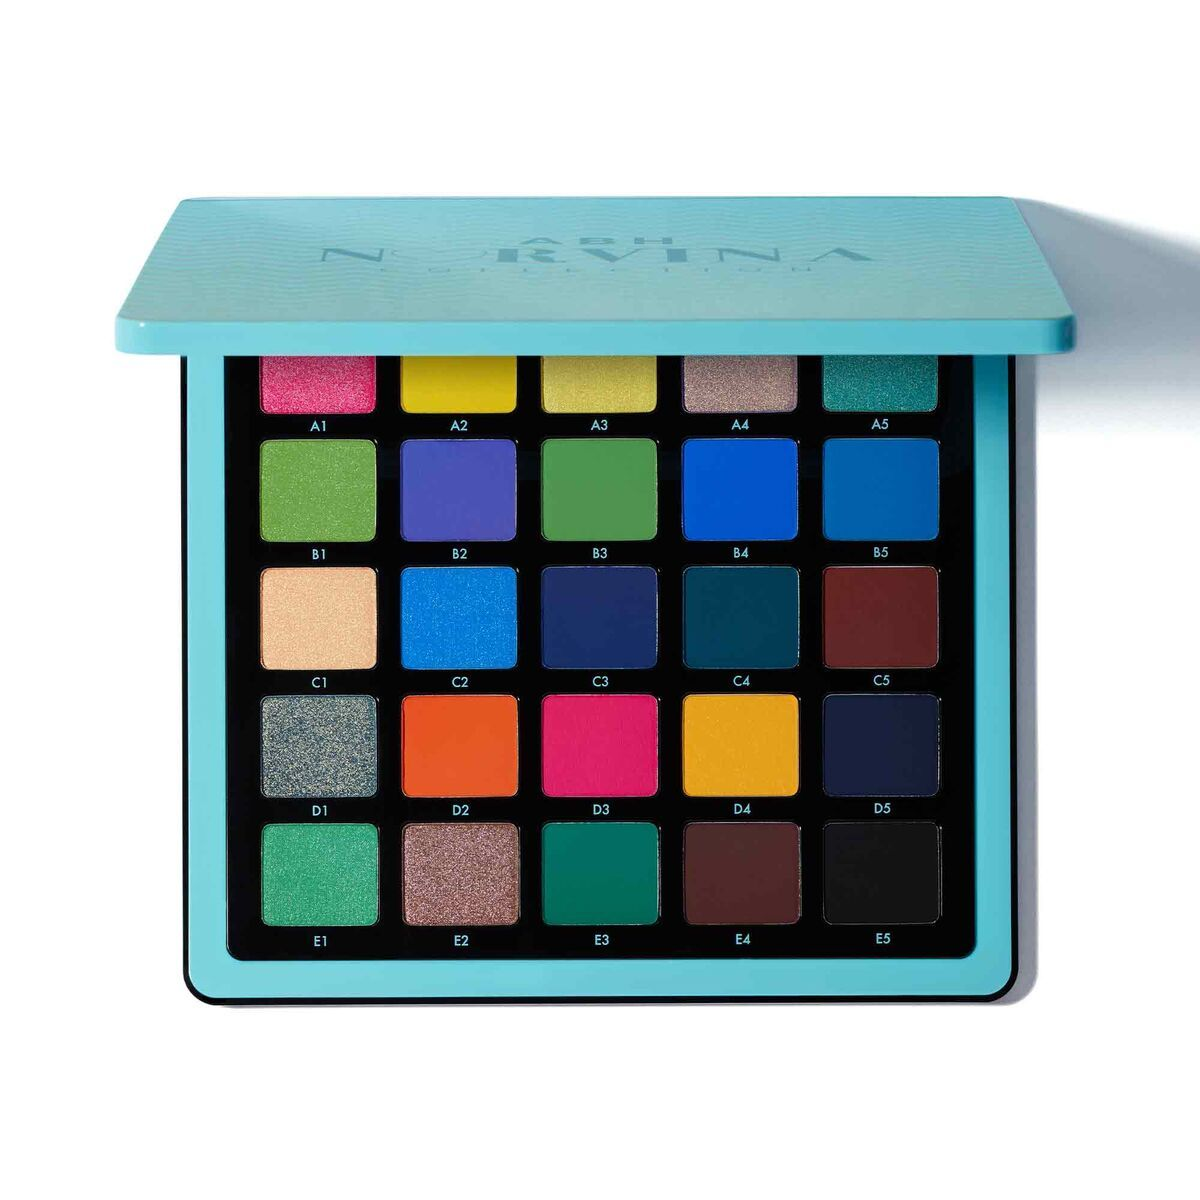 Anastasia Beverly Hills launch new Subculture eyeshadow